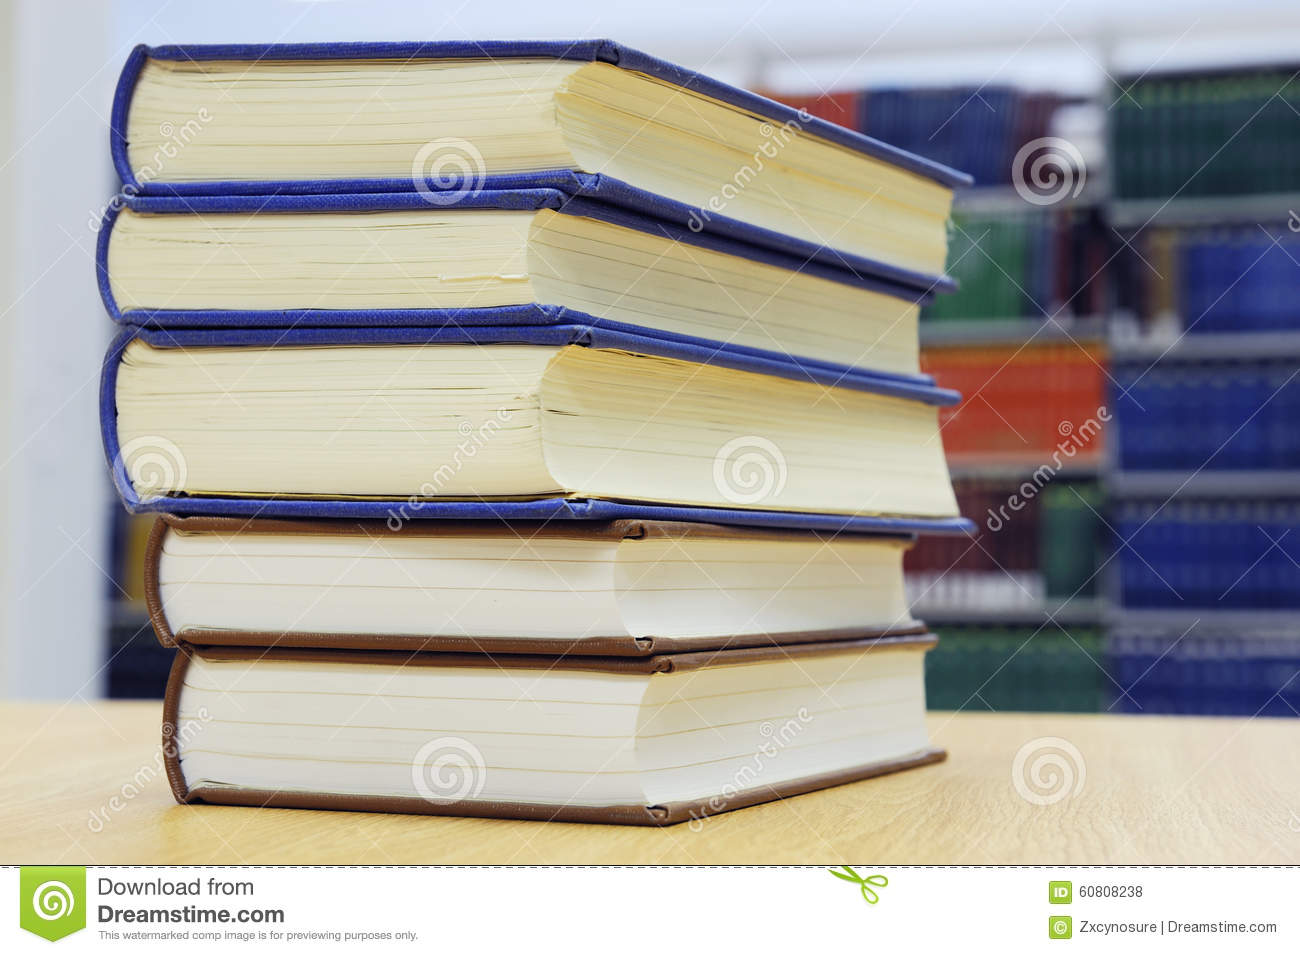 stacking books on library table stock photo - image: 60808238